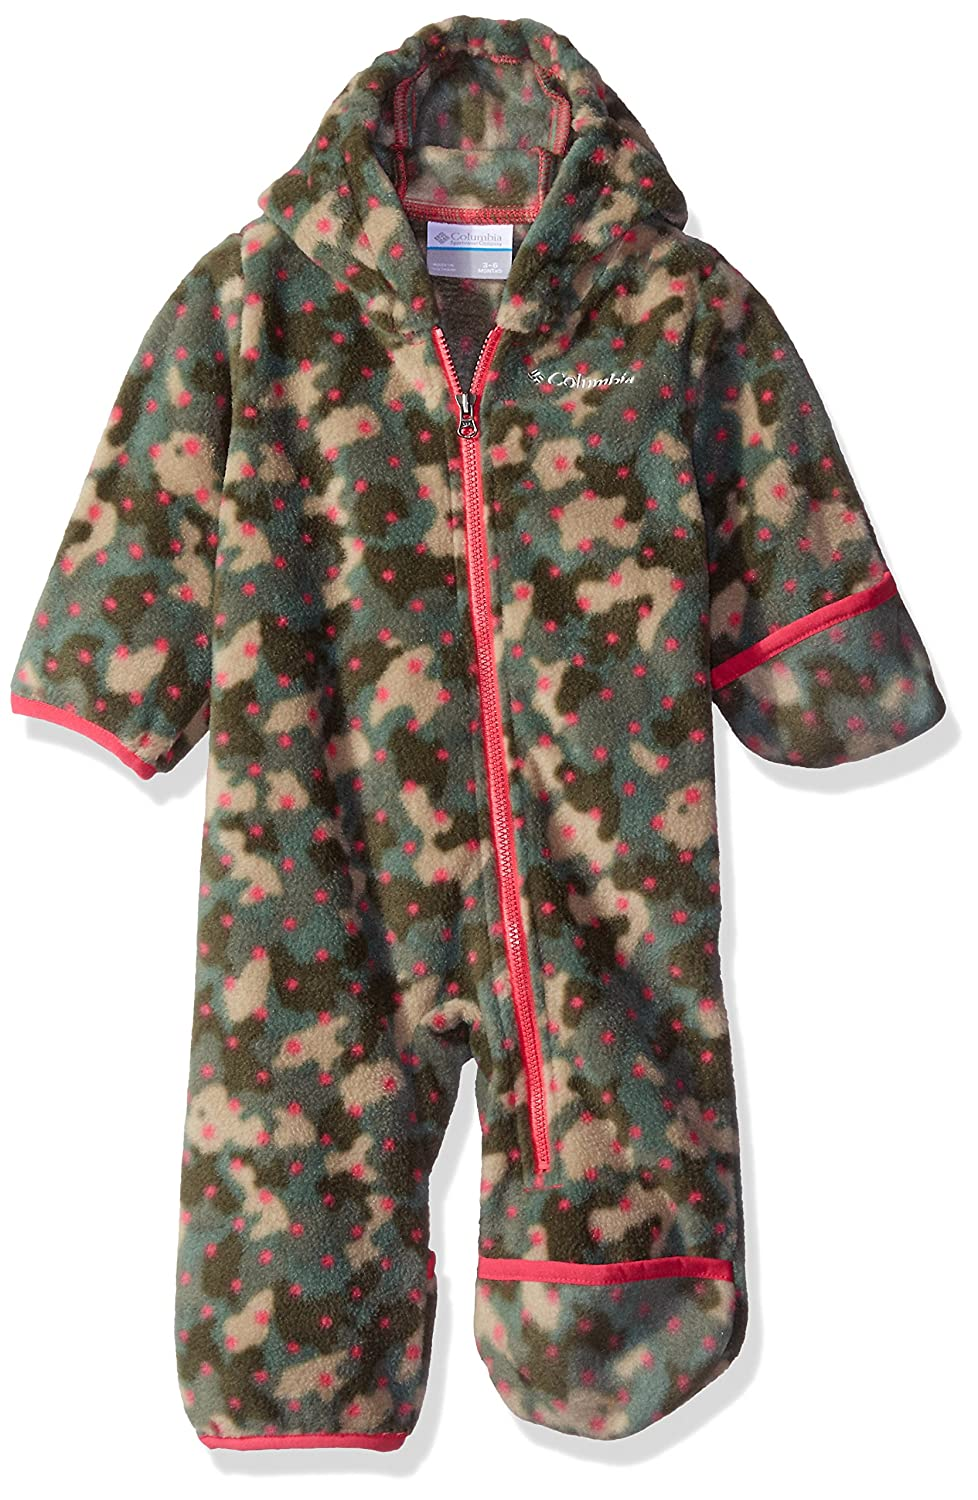 Columbia Baby Girls' Snowtop II Bunting, Punch Pink Camo, 18-24 Months 1523731638